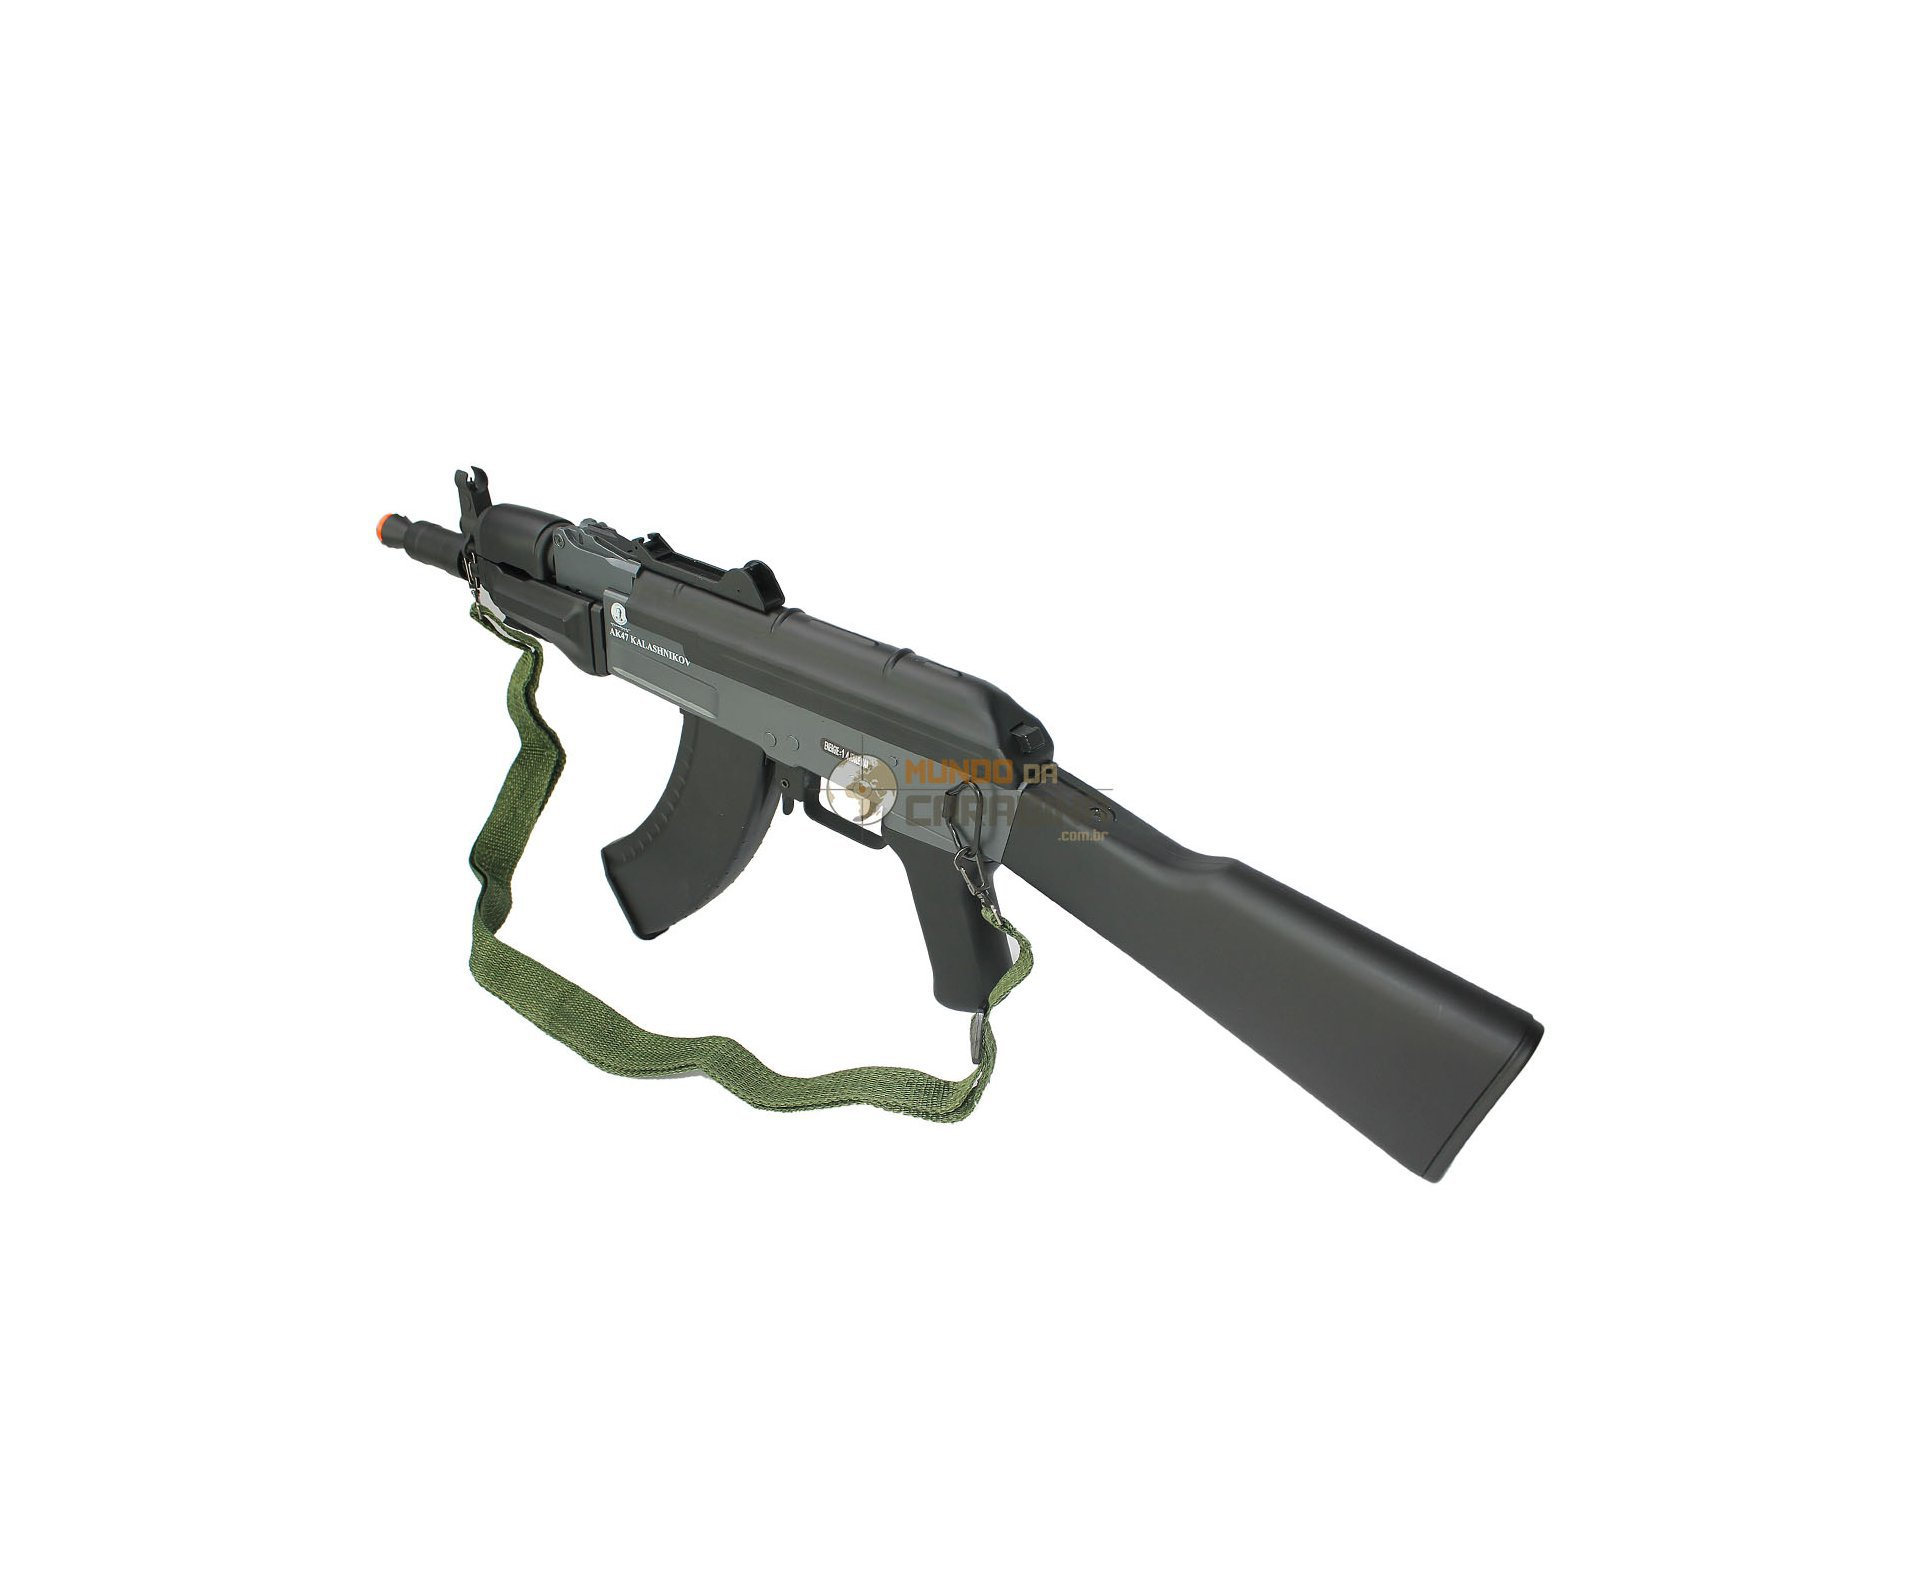 Rifle Airsoft Ak Spetsnaz Full Metal - Calibre 6,0 Mm - Kalashnikov